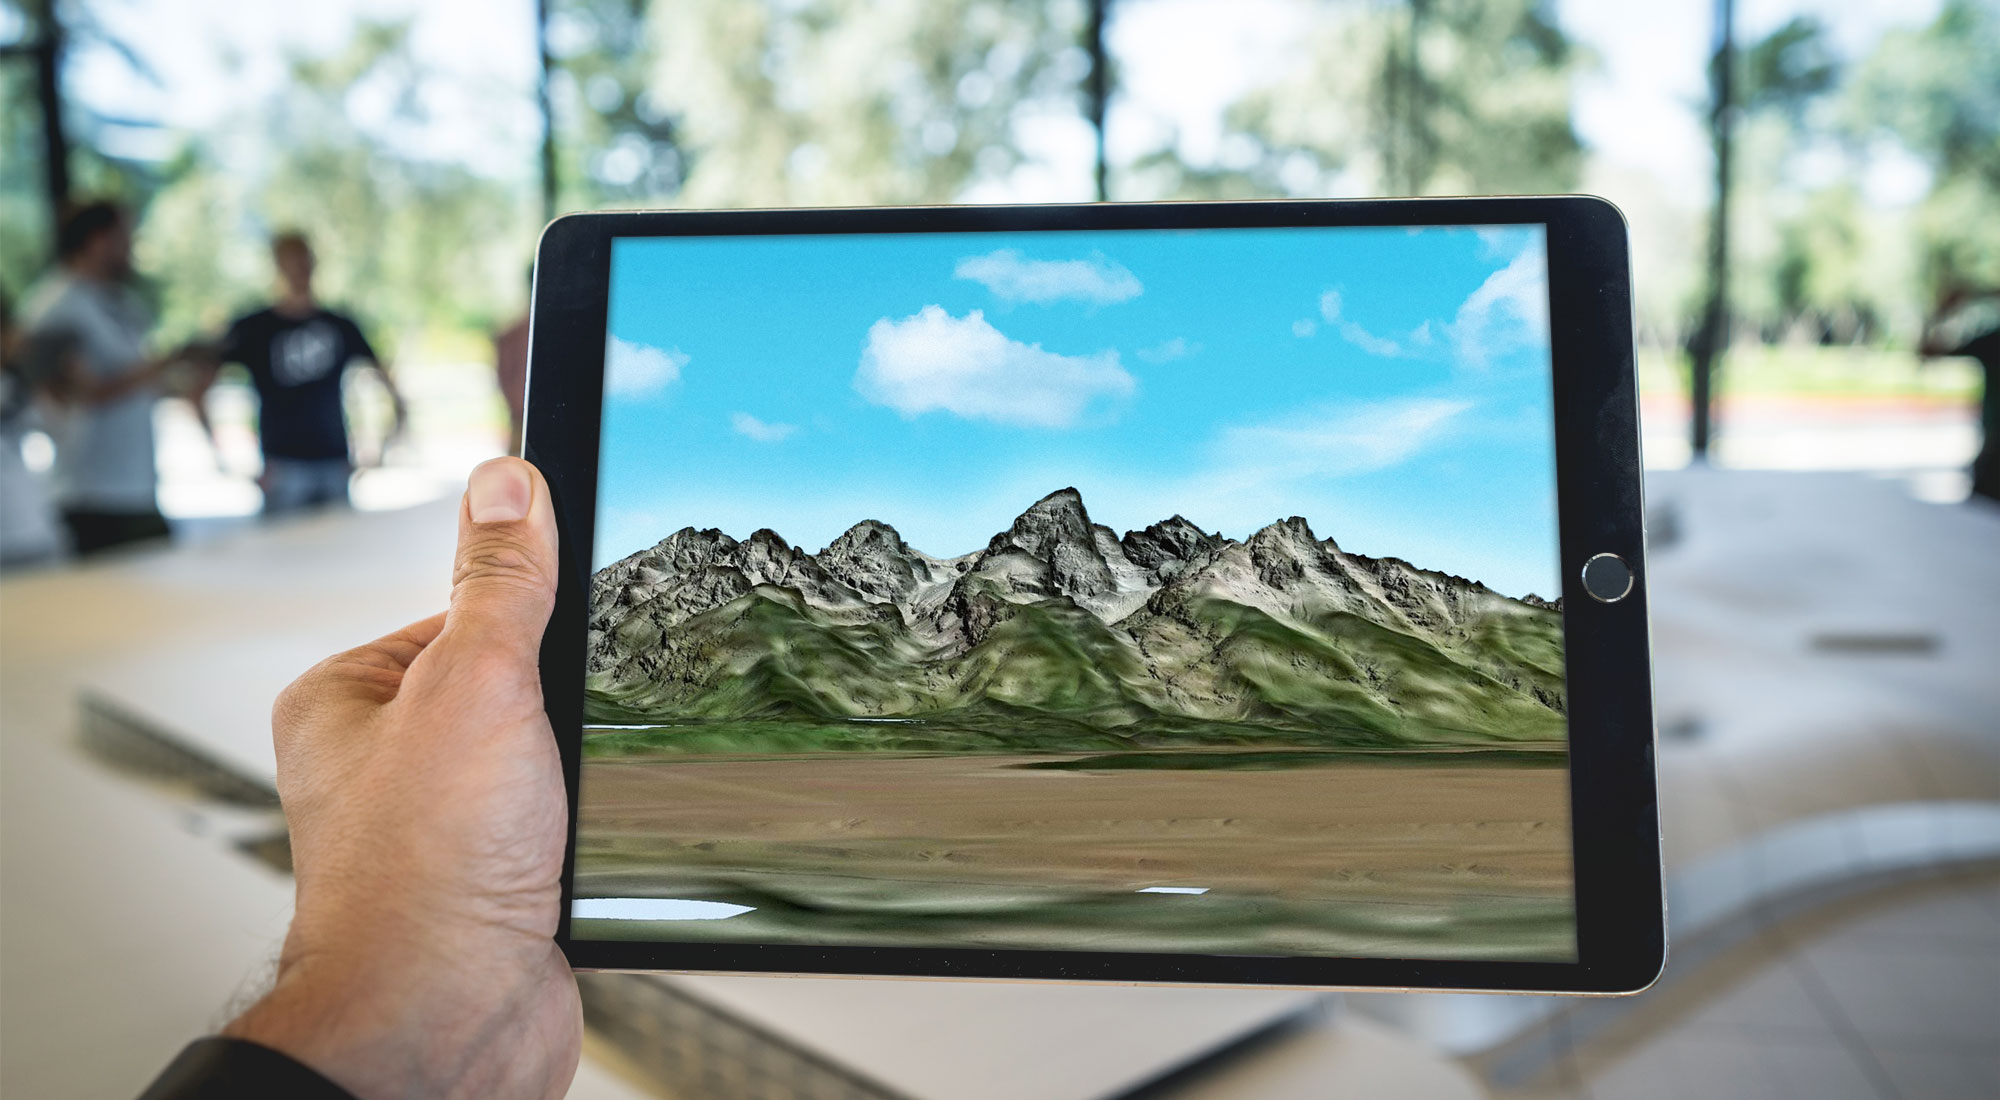 iPad showing augmented reality mountains